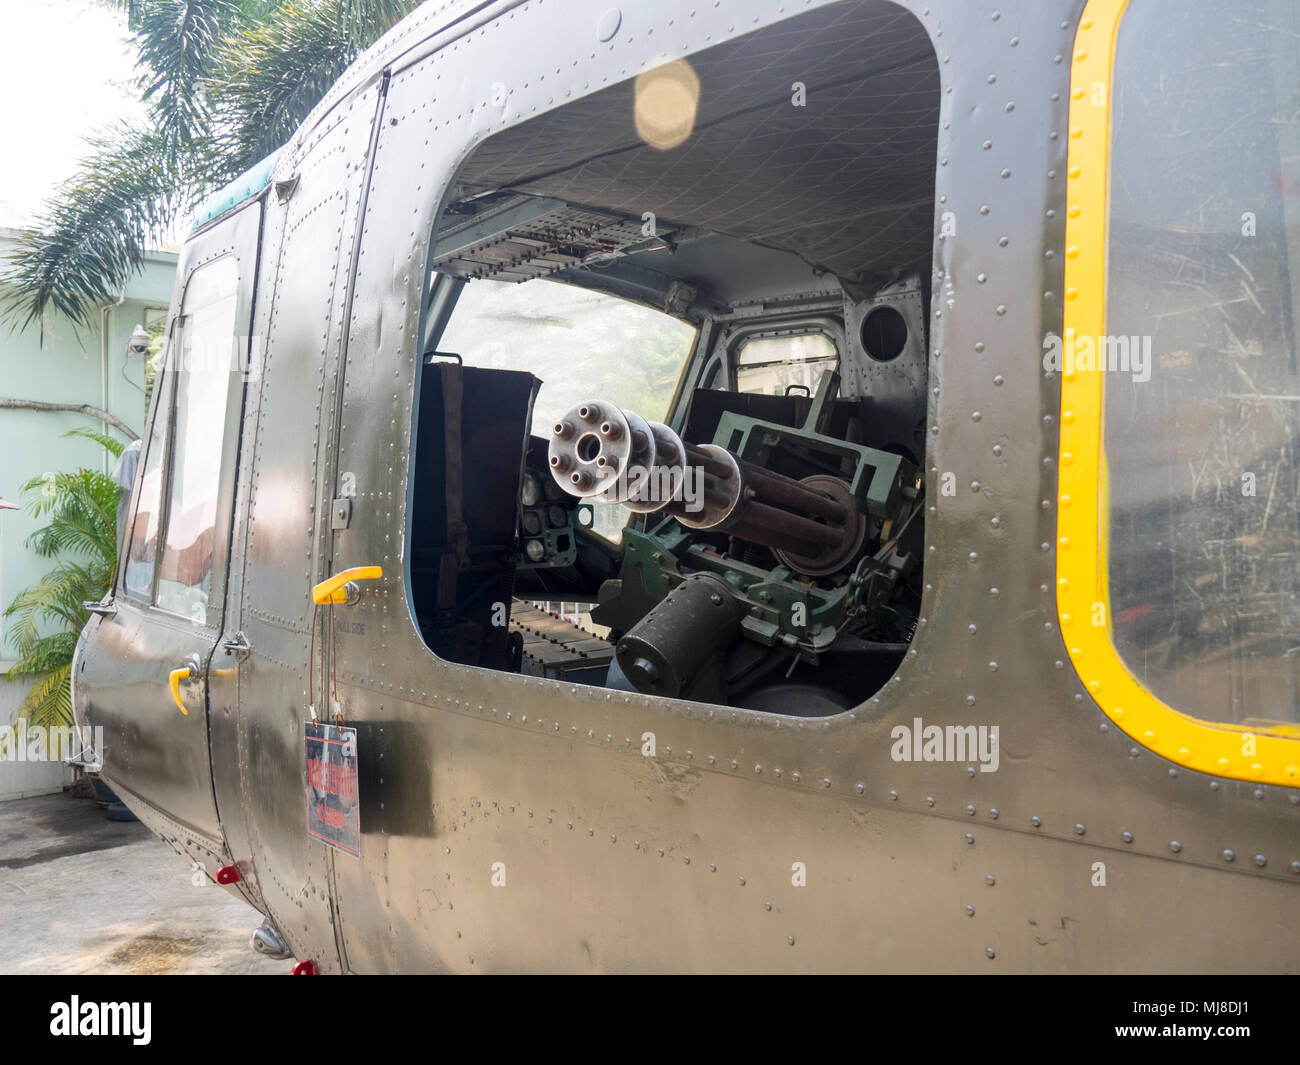 US Army Bell UH-1 Iroquois Huey helicopter from the Vietnam War on display at the War Remnants Museum, Ho Chi Minh City, Vietnam. - Stock Image